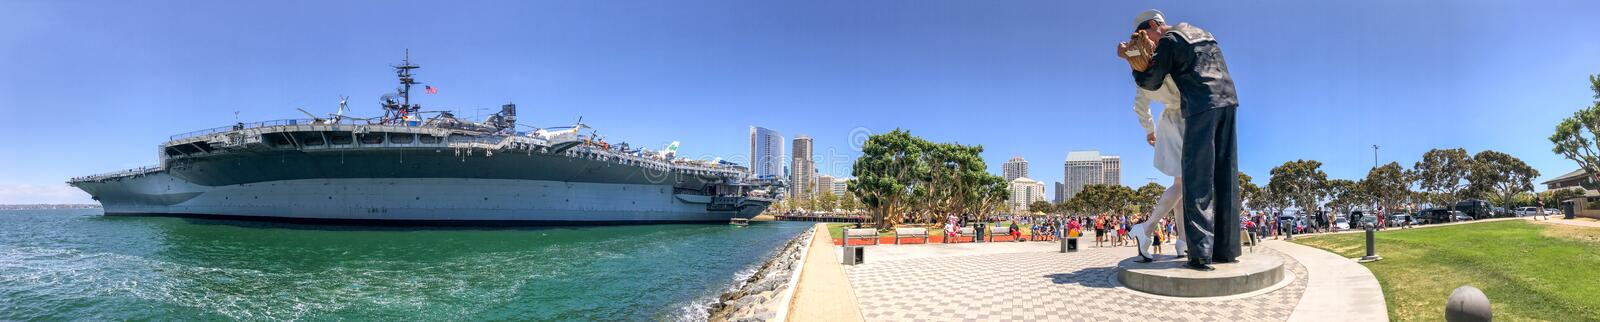 SAN DIEGO, CA - JULY 30, 2017: Tourists visit USS Midway near Em. Bracing Peace Statue. San Diego attracts 20 million tourists annually stock photos